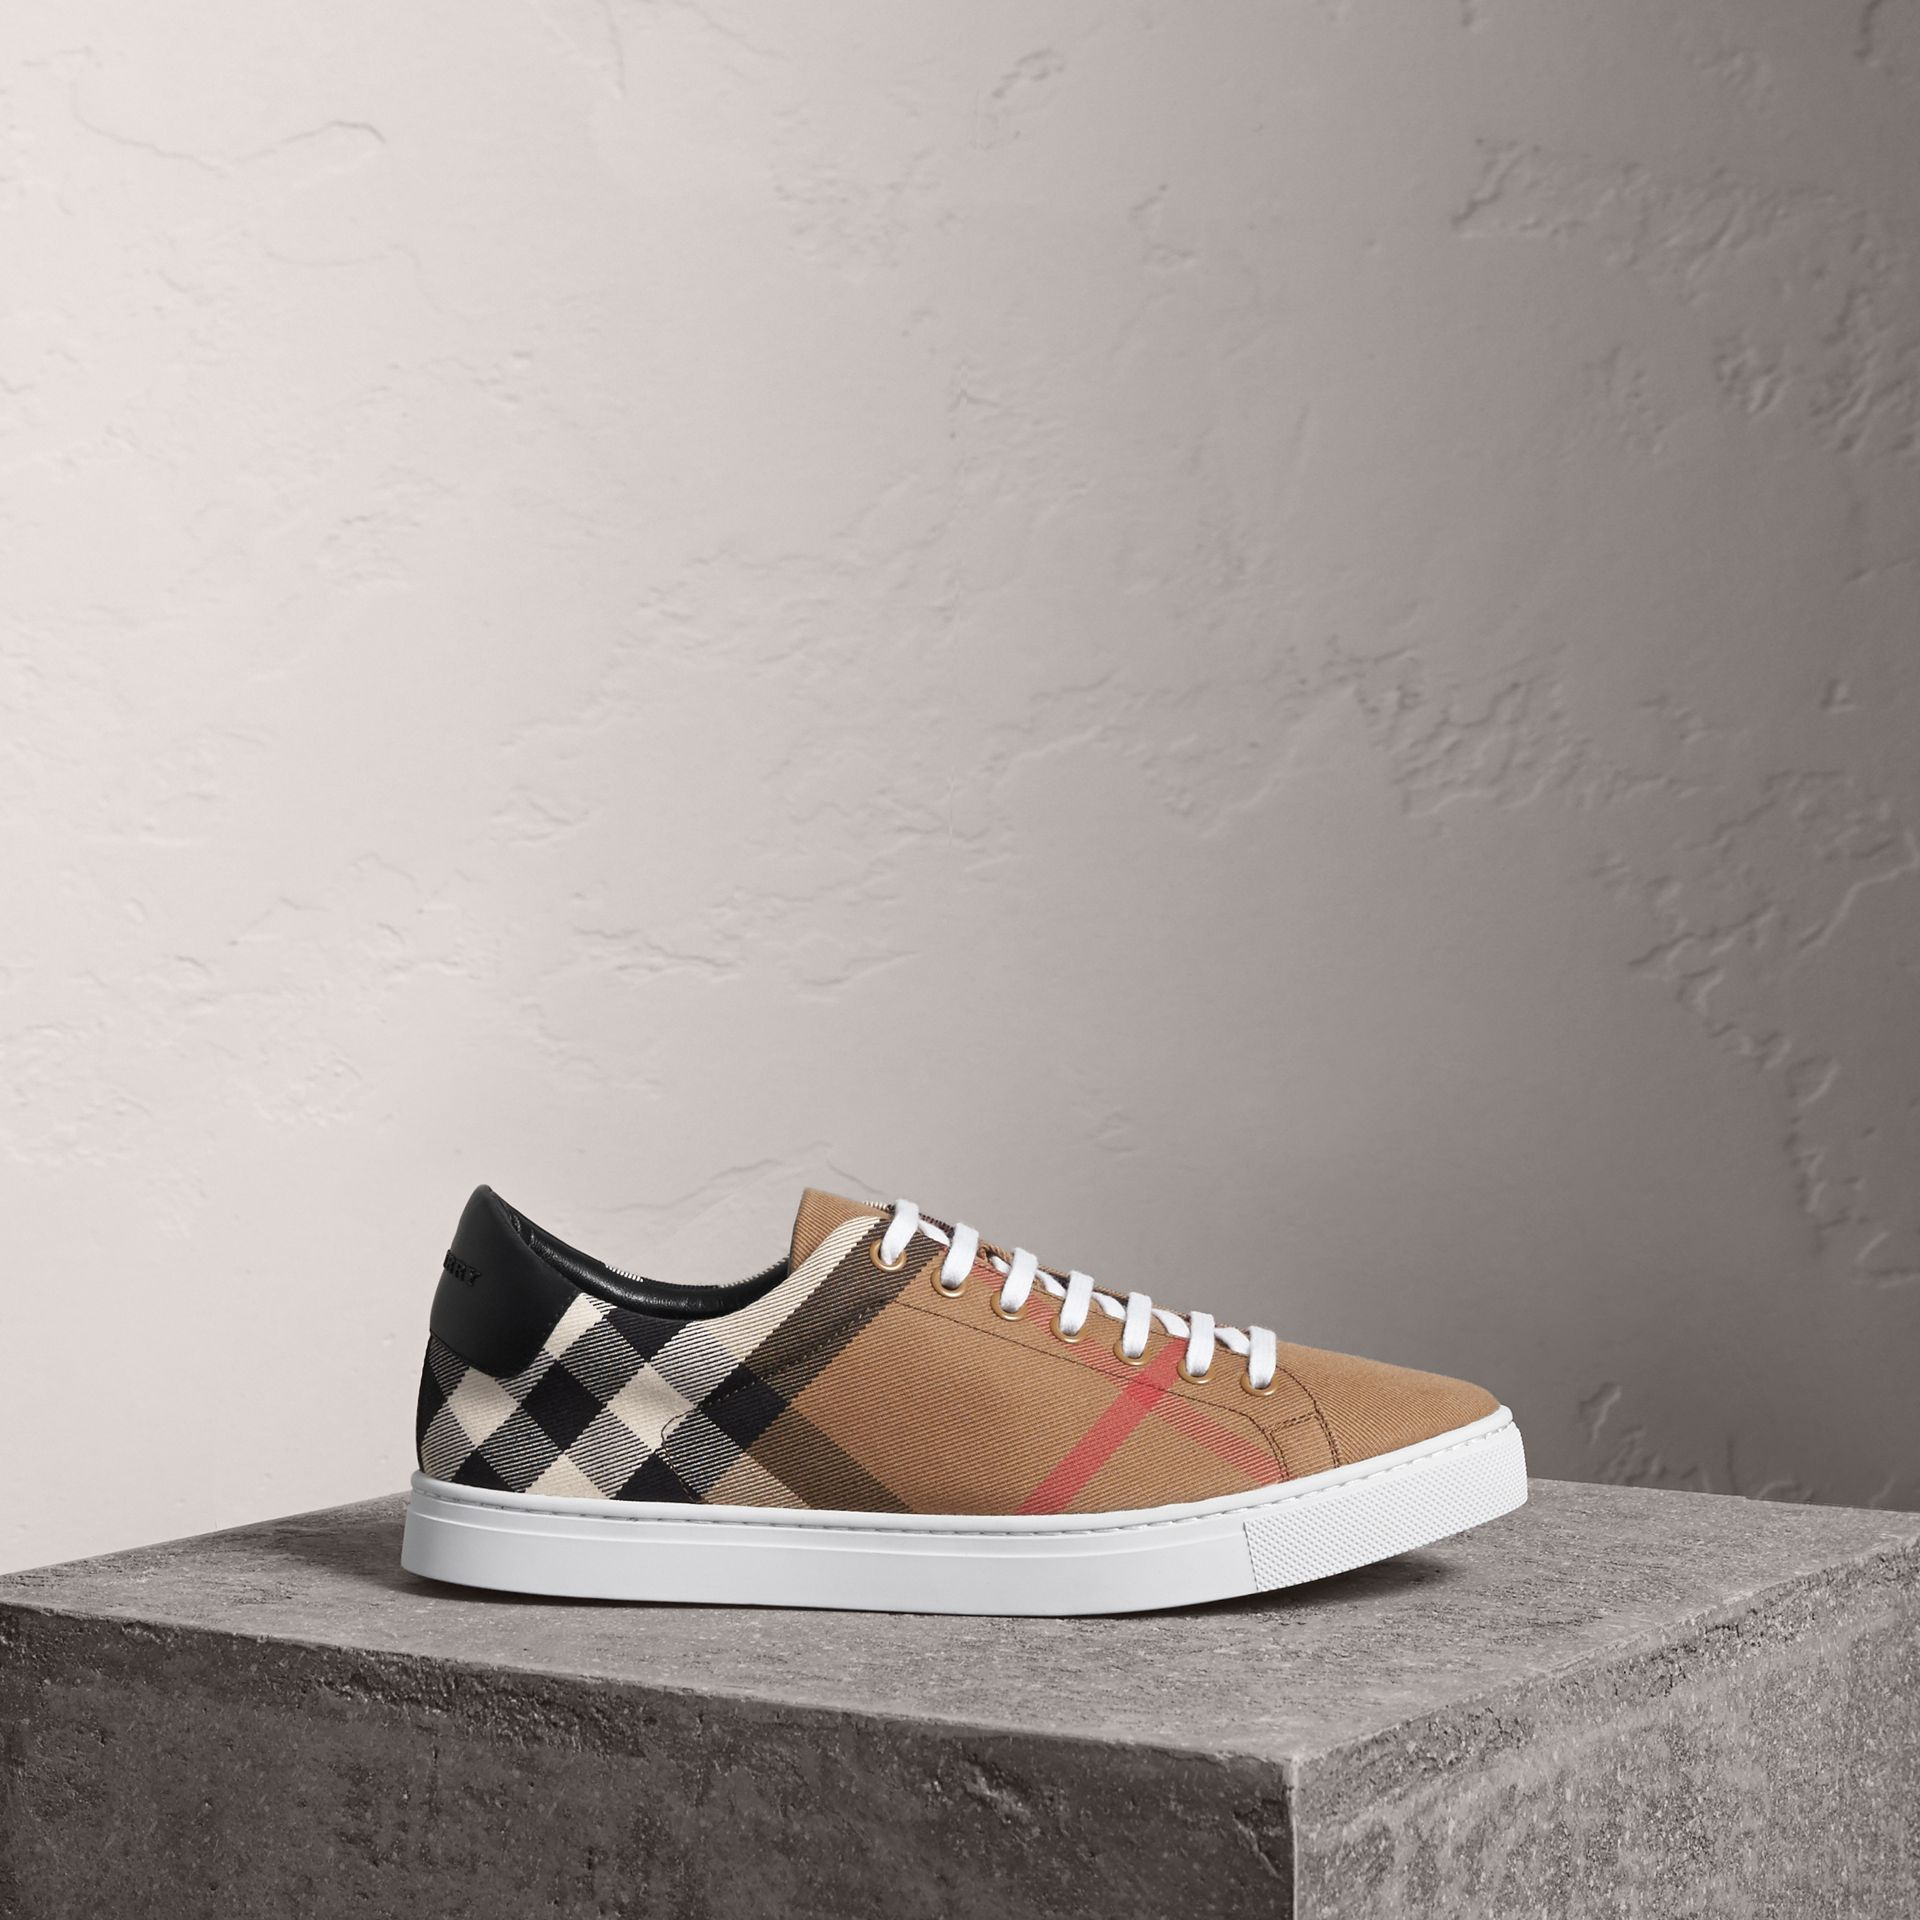 House Check and Leather Sneakers in Check/black - Men | Burberry Canada - gallery image 0